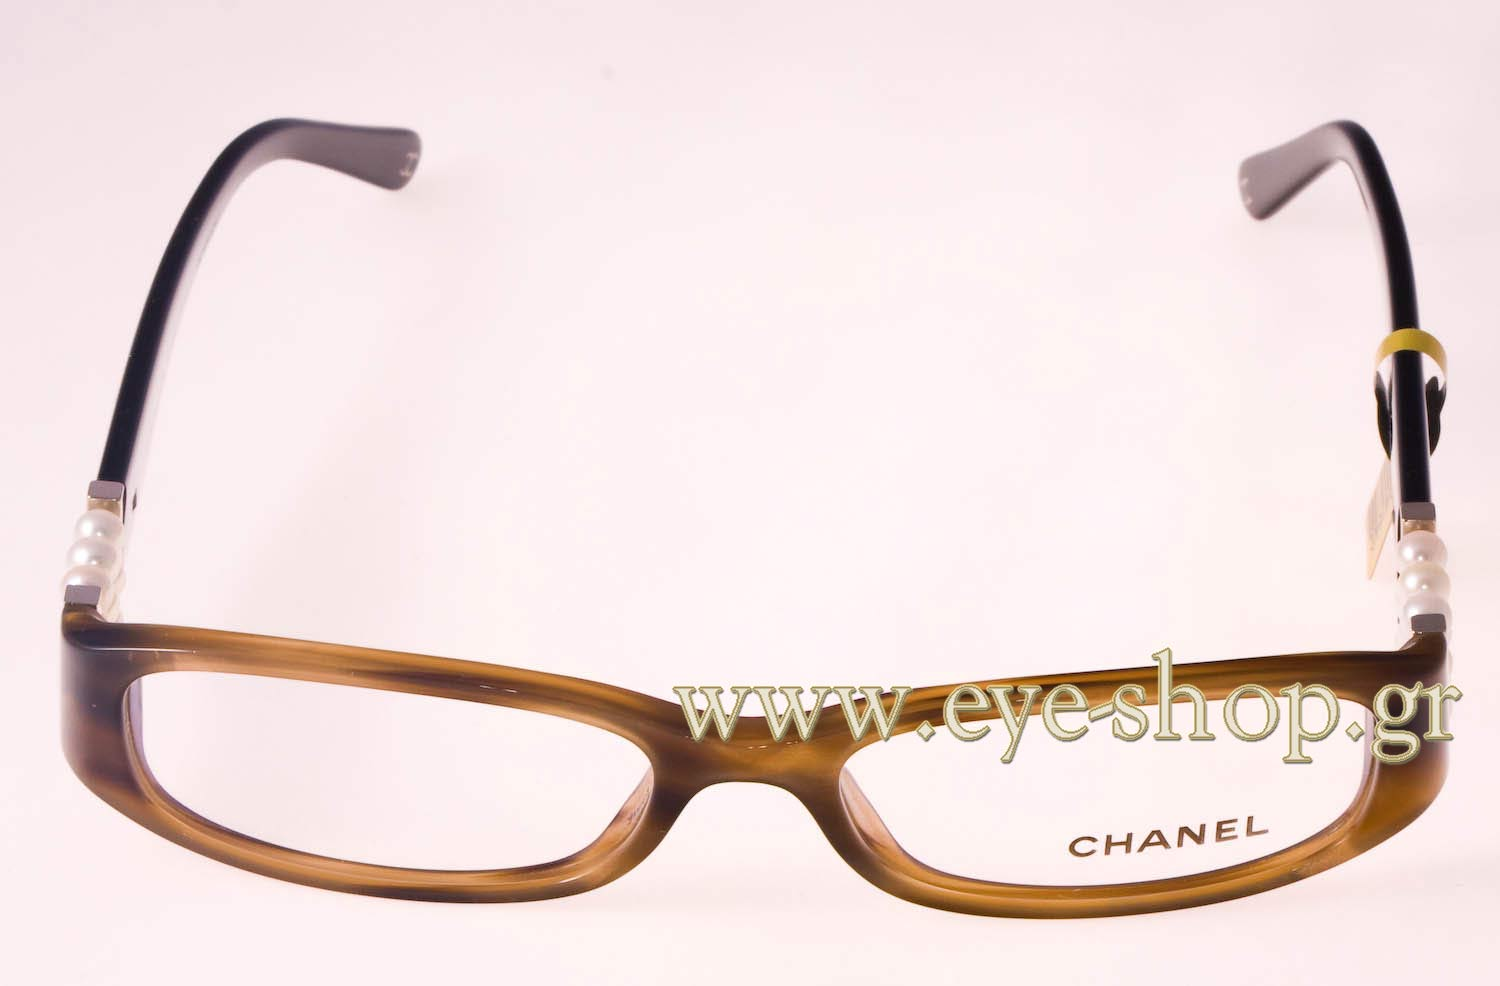 9ab7b22eda Frame color  Chanel model 3155H color 1101